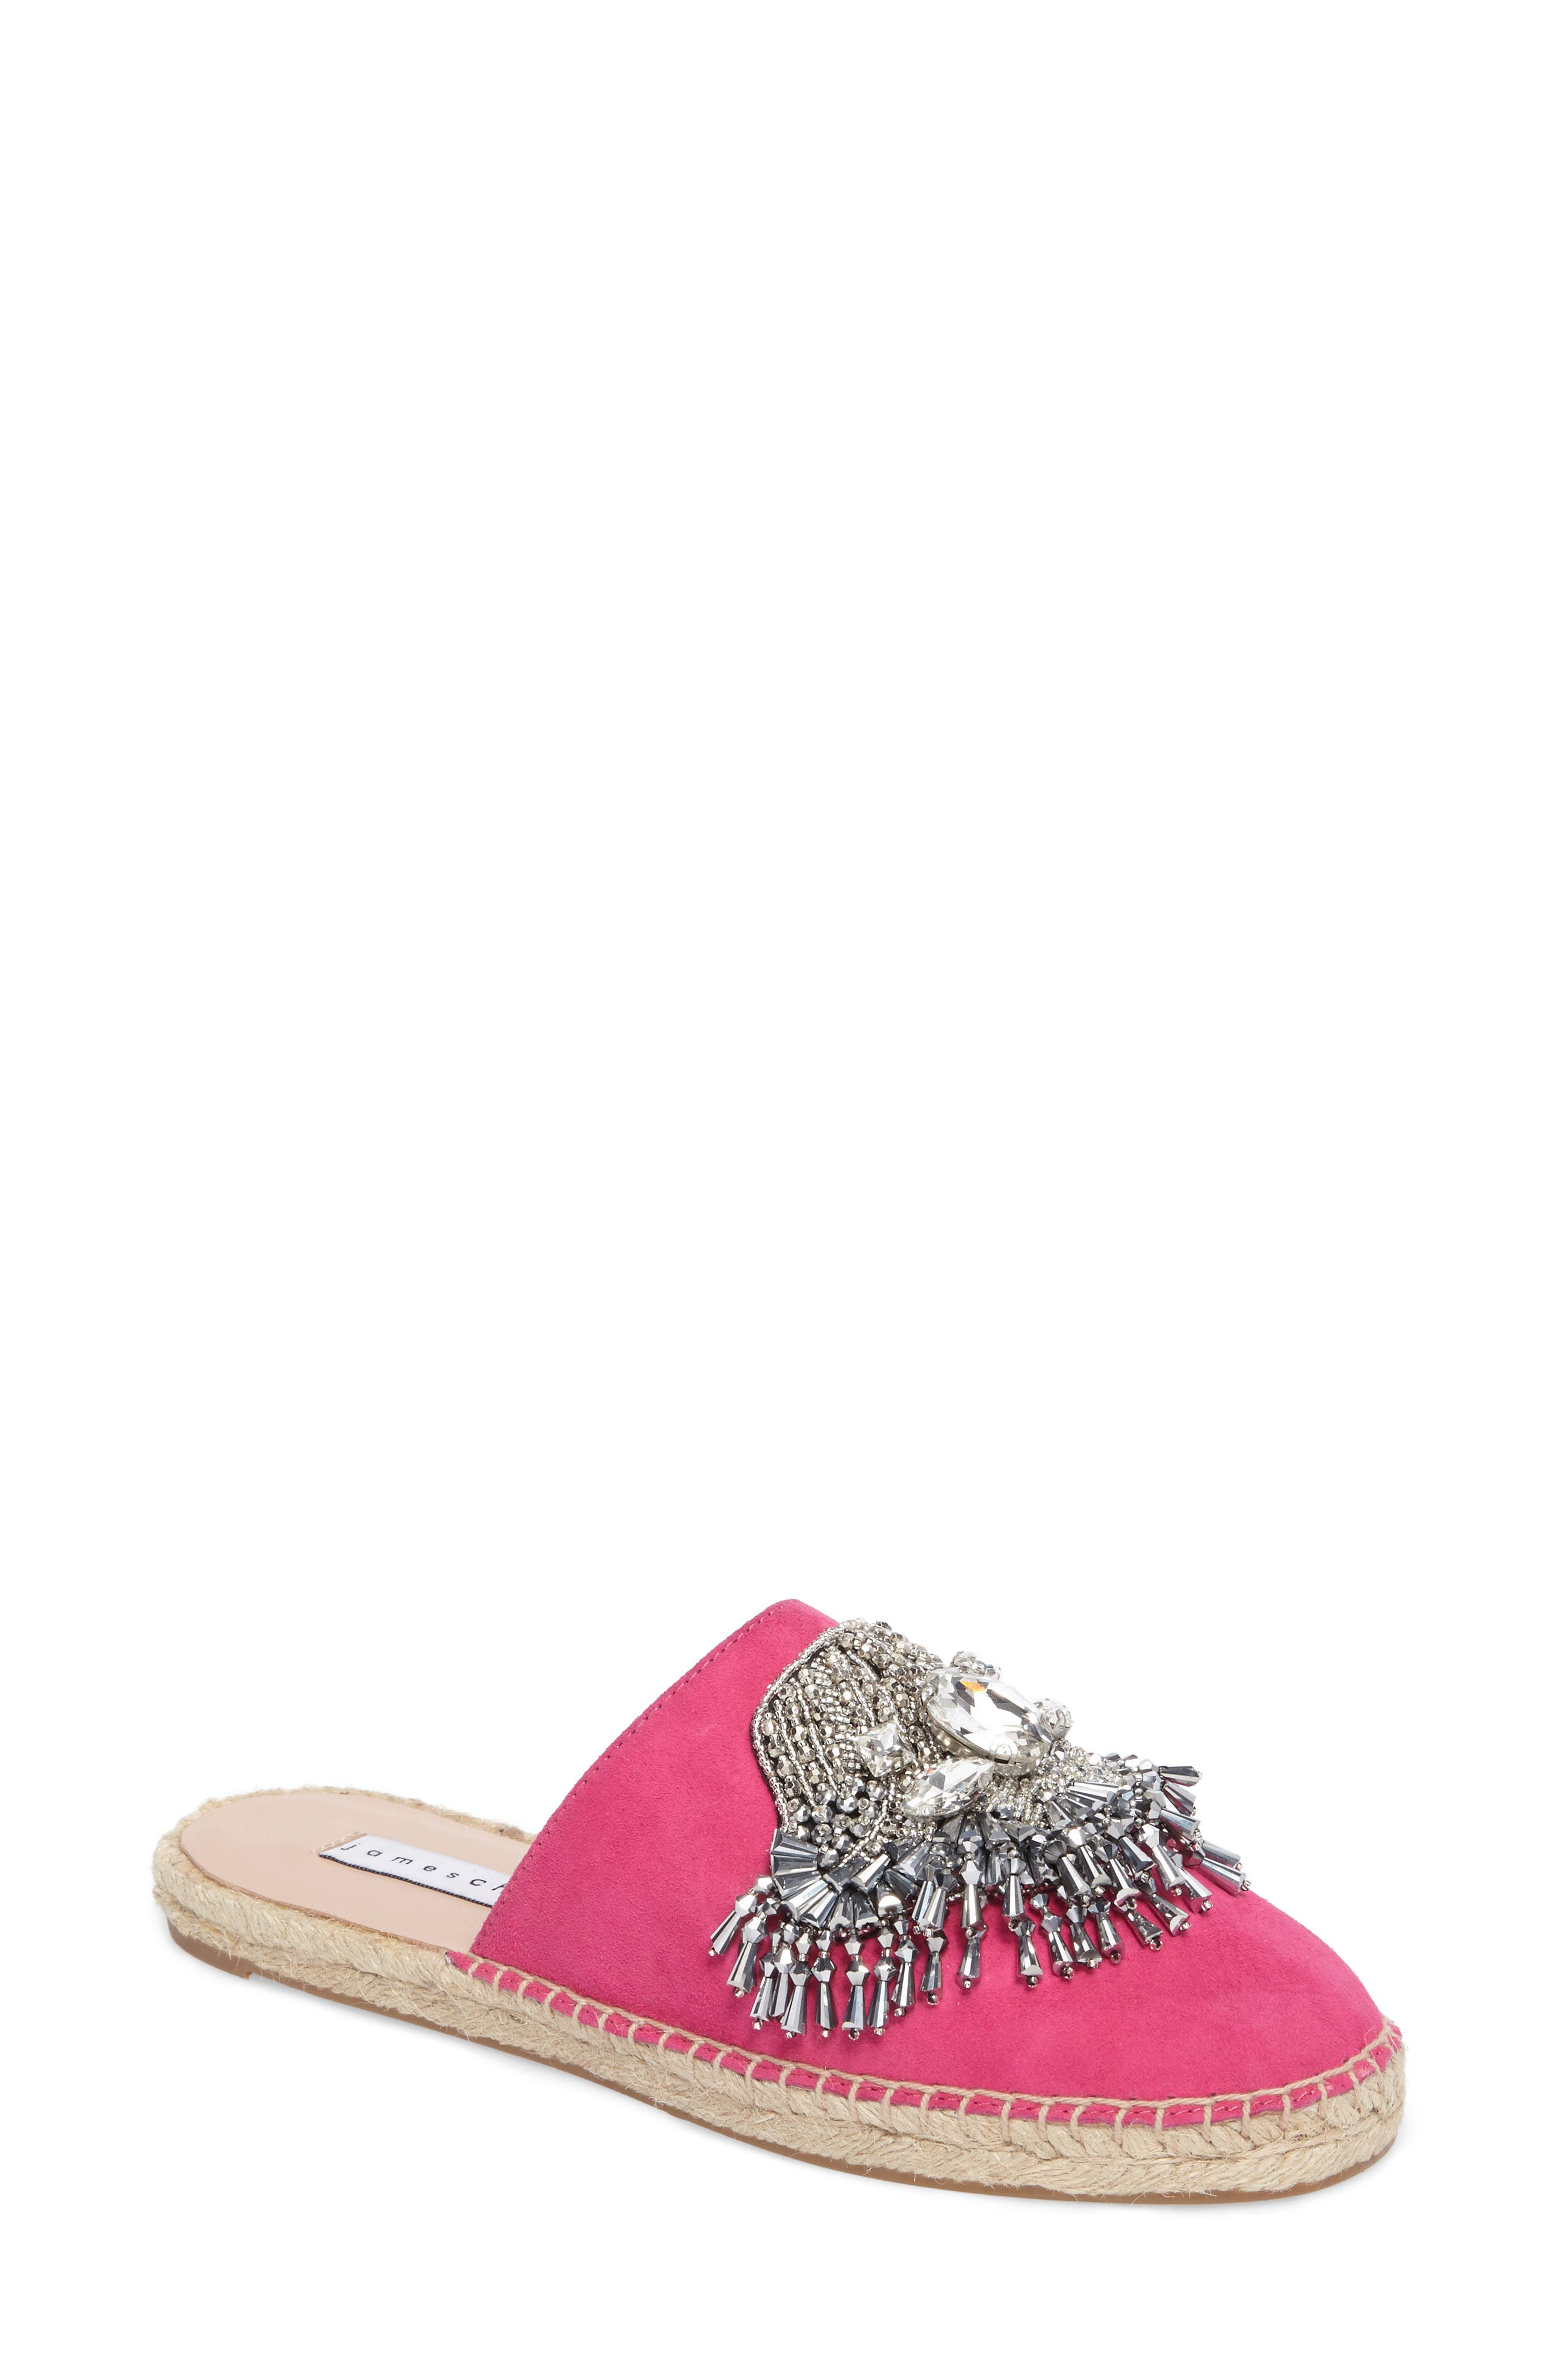 Alternate Image 1 Selected - James Chan Izalea Espadrille Mule (Women)